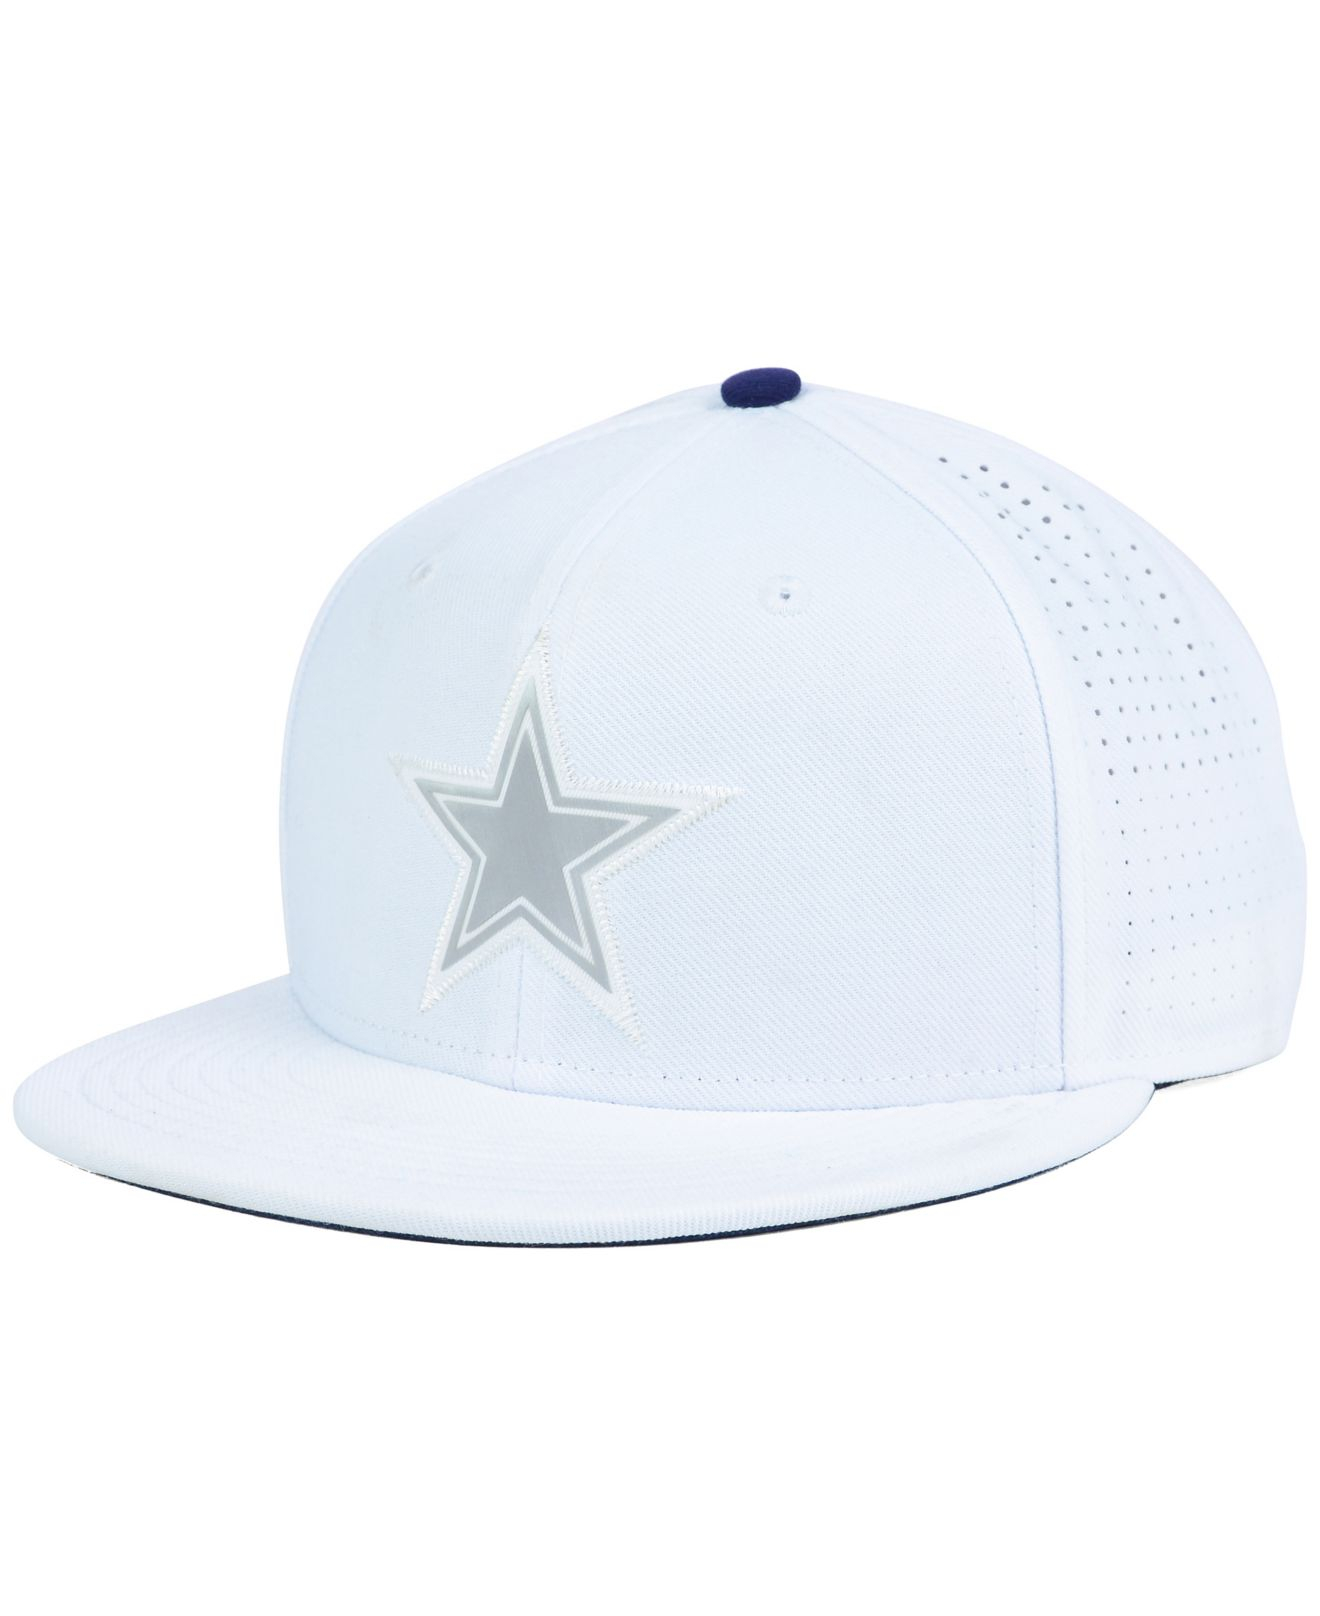 1813675751d332 ... new arrivals lyst nike dallas cowboys true vapor fitted cap in white  for men ba5b6 c234d